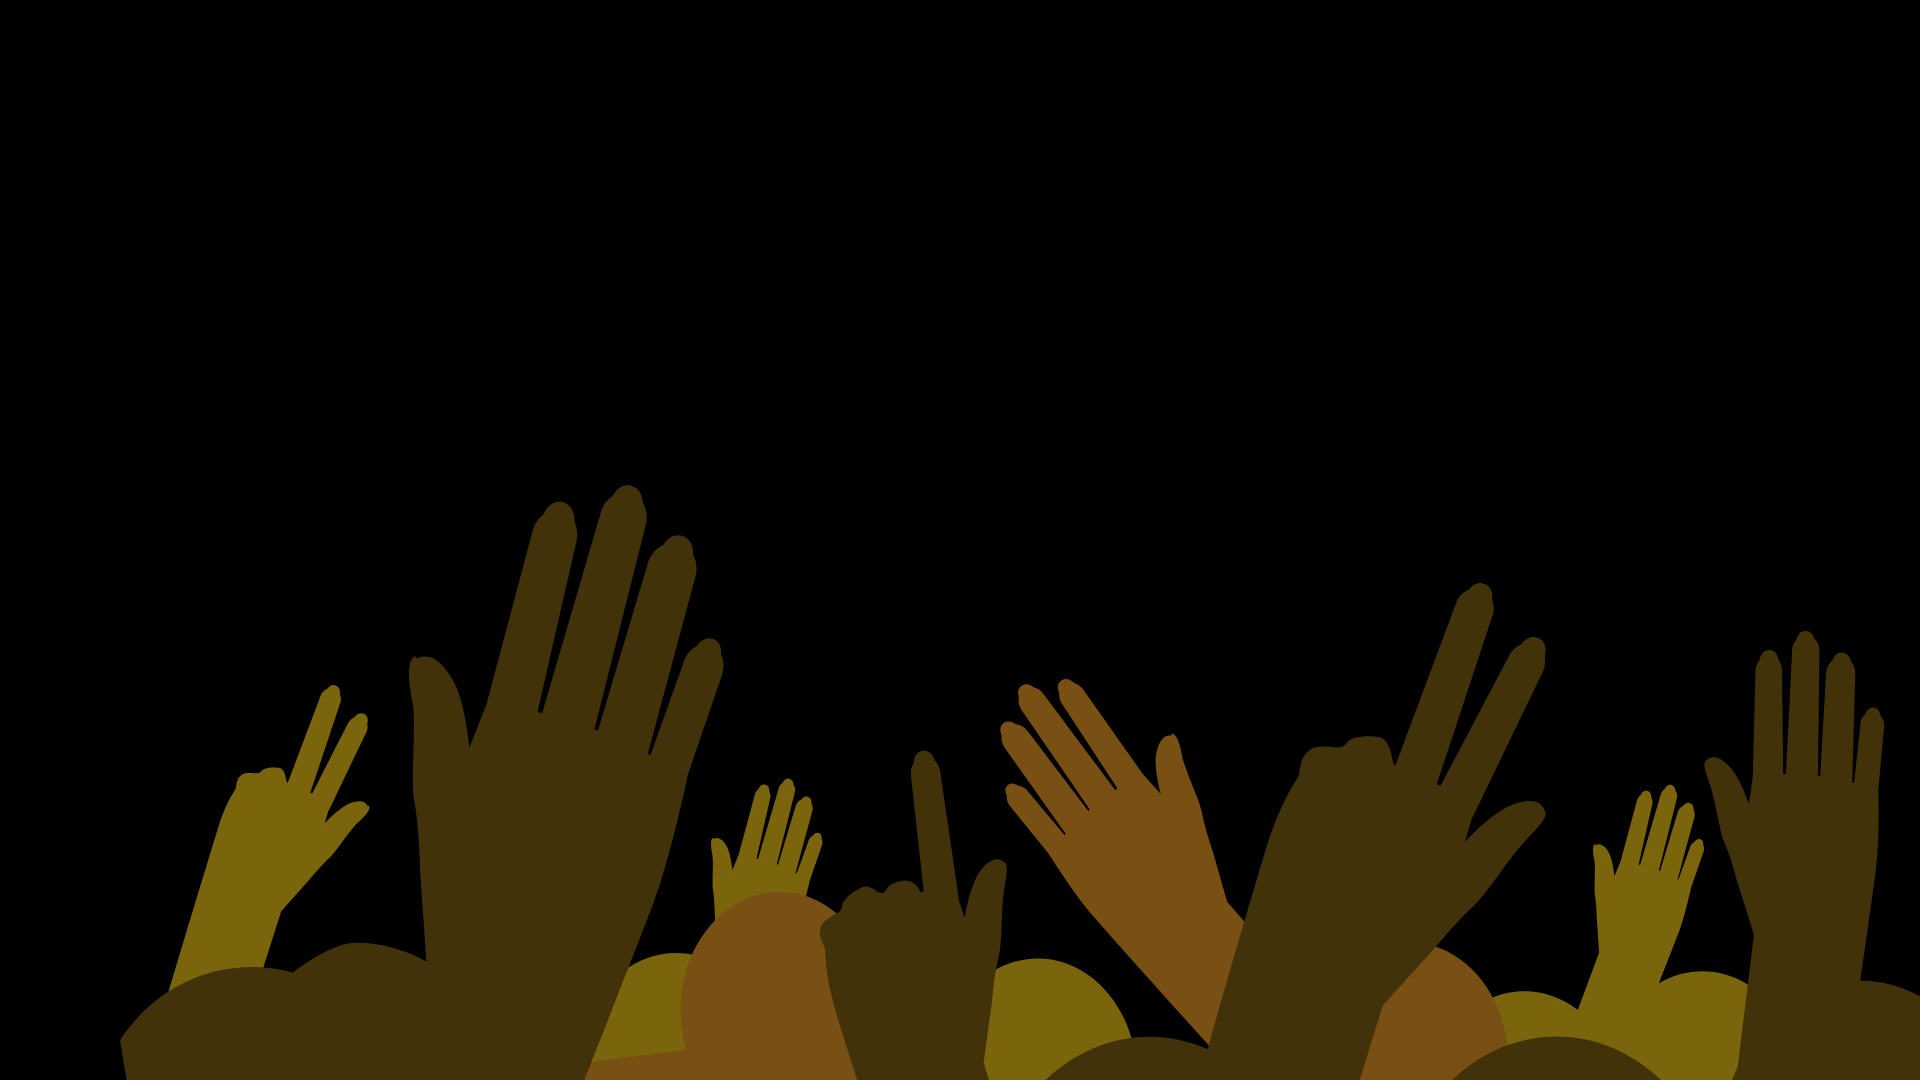 graphic of diverse hands raised up